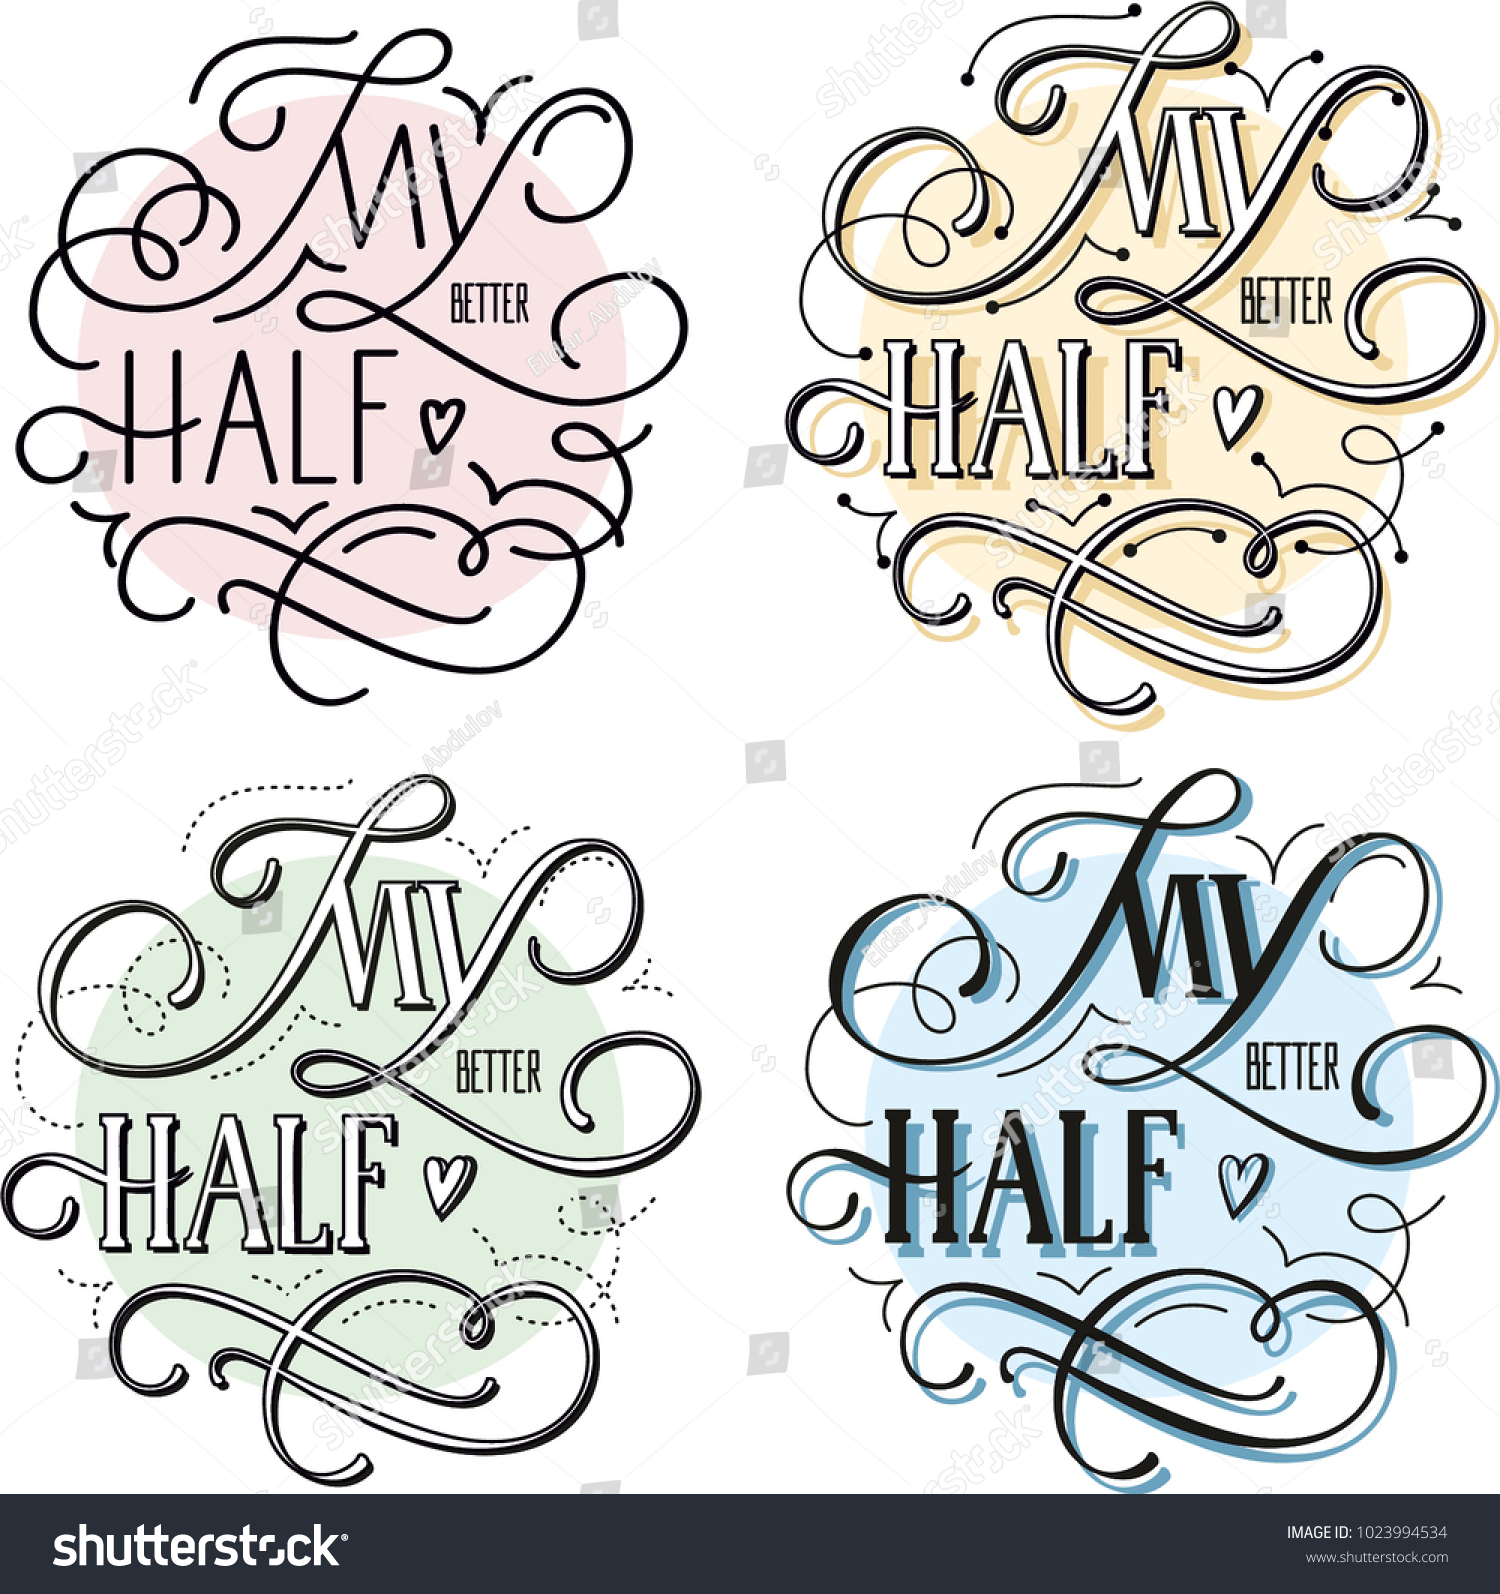 my better half happy valentines day card with calligraphy text vector illustration set